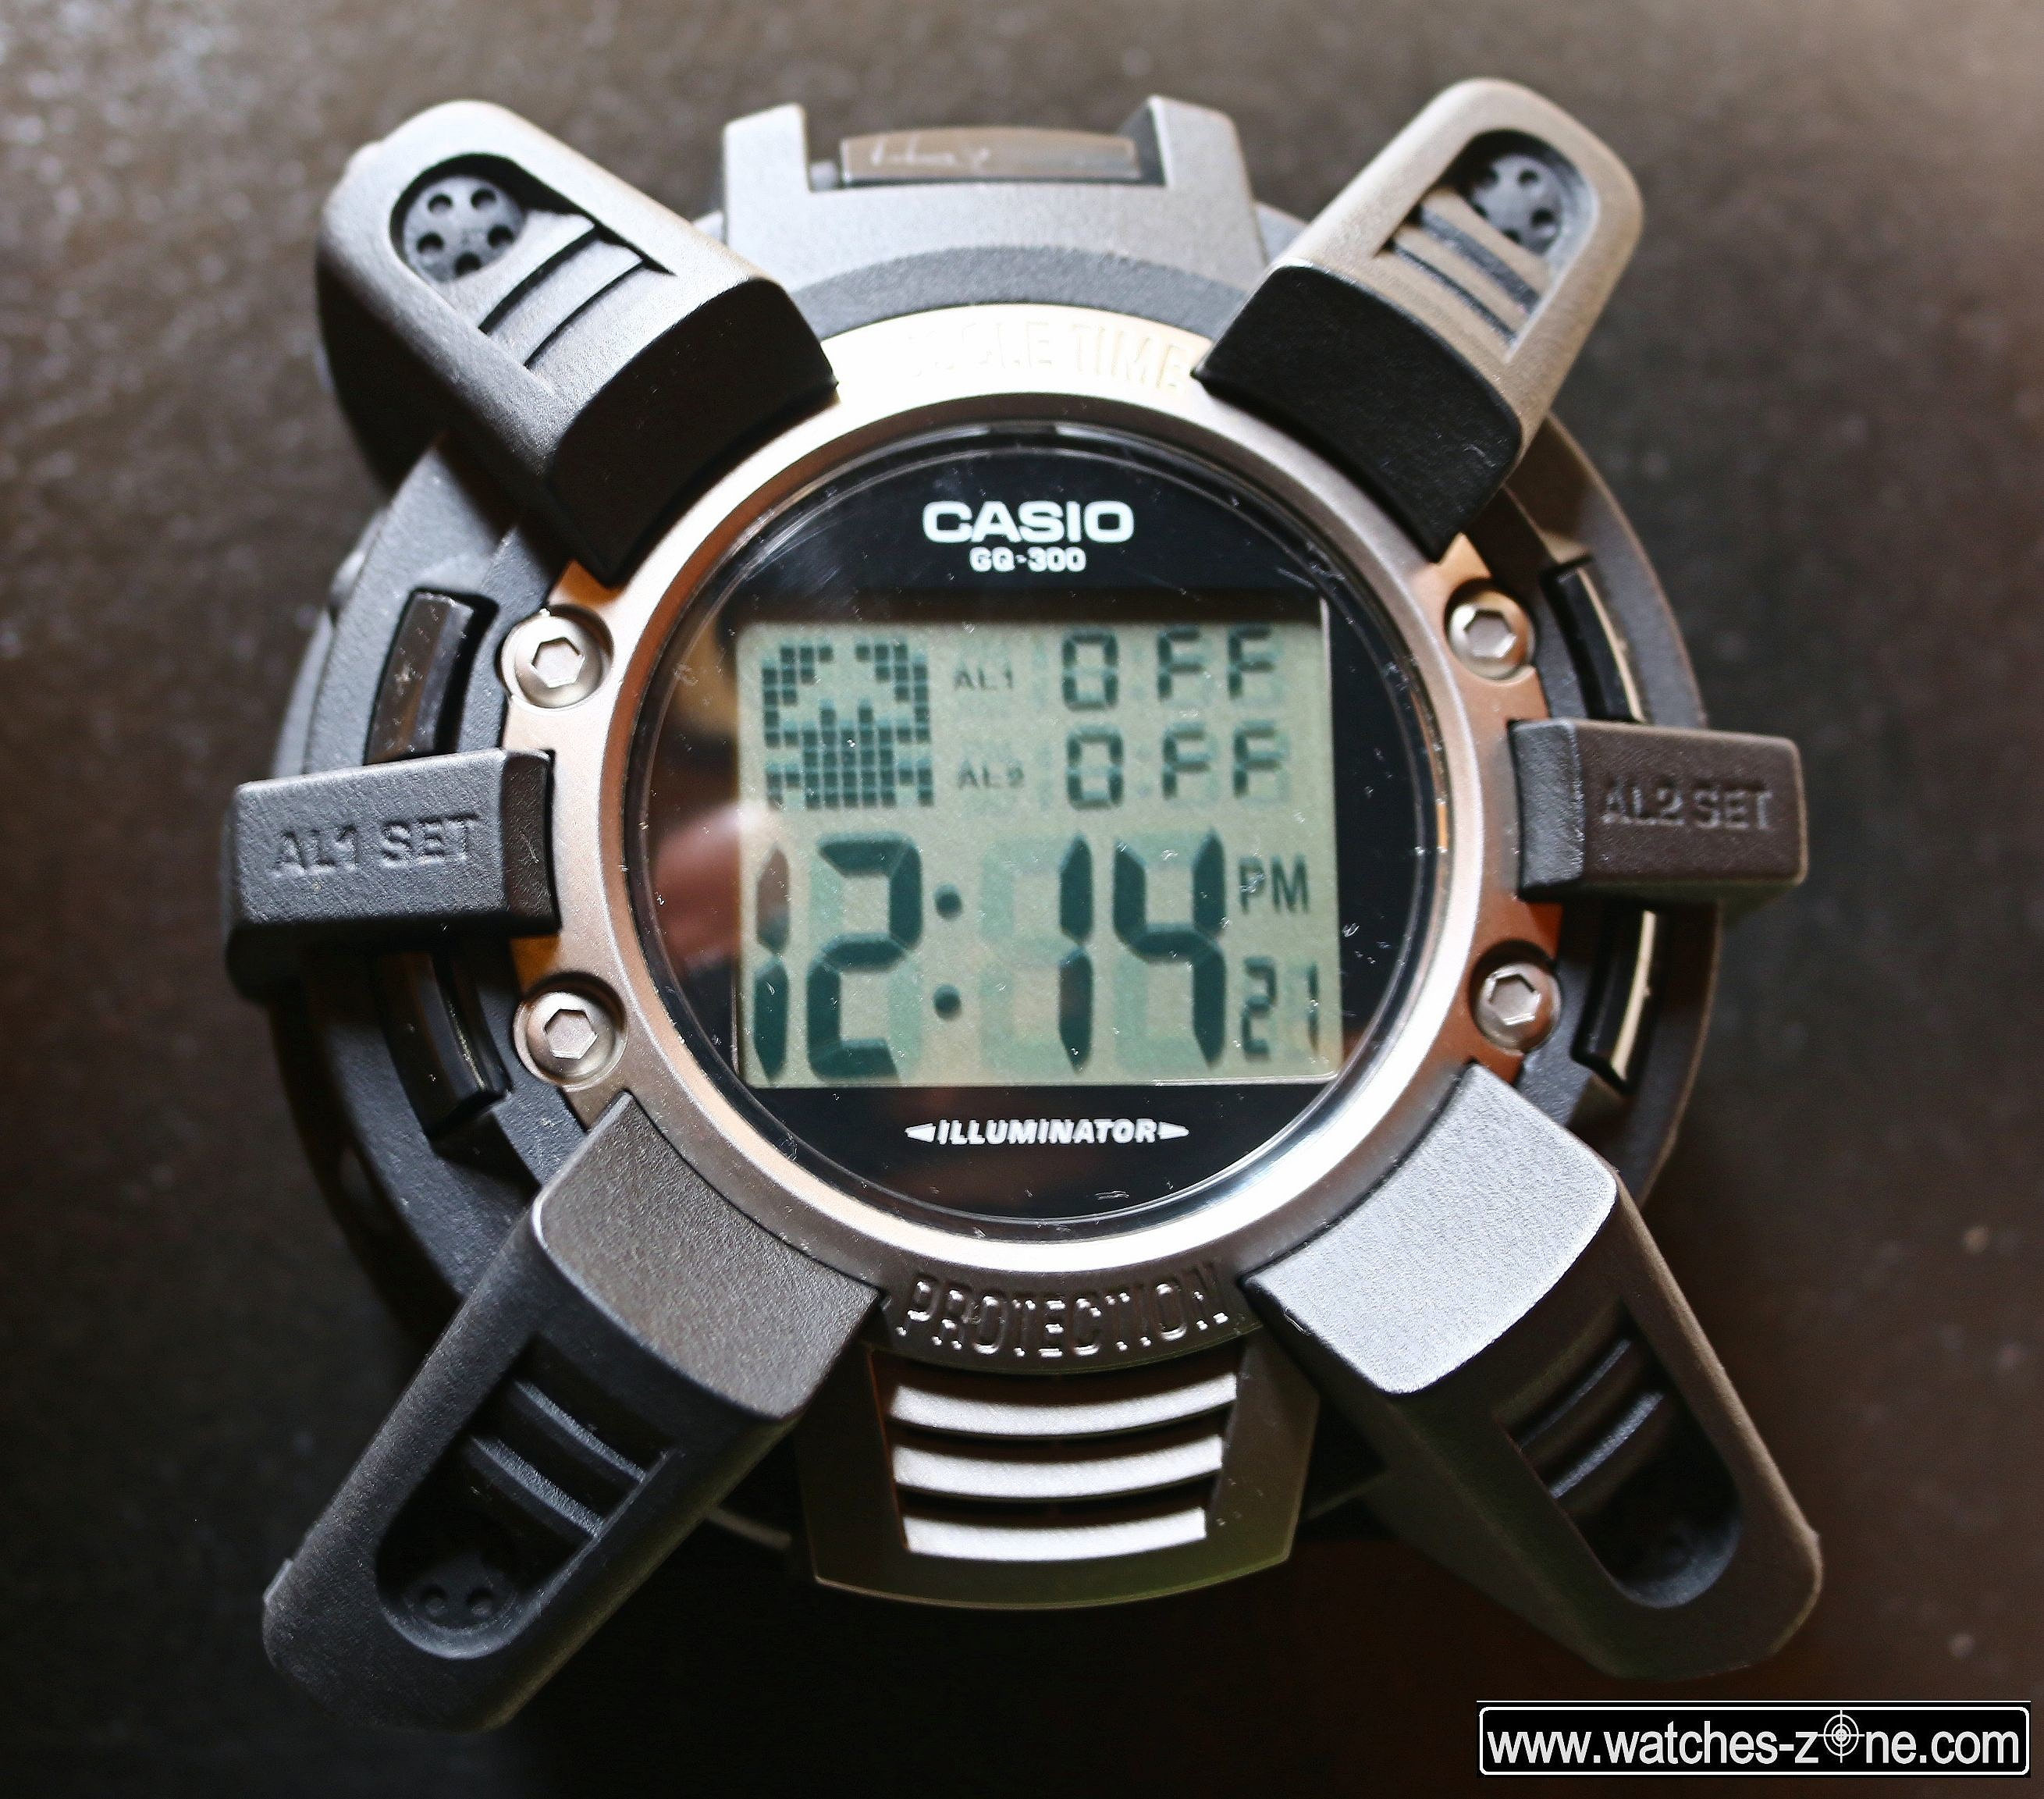 CASIO GQ-300 MUSCLE TIME: ¡¡¡ El Concepto !!! 11dc733298ade694c2c516820a06f376o